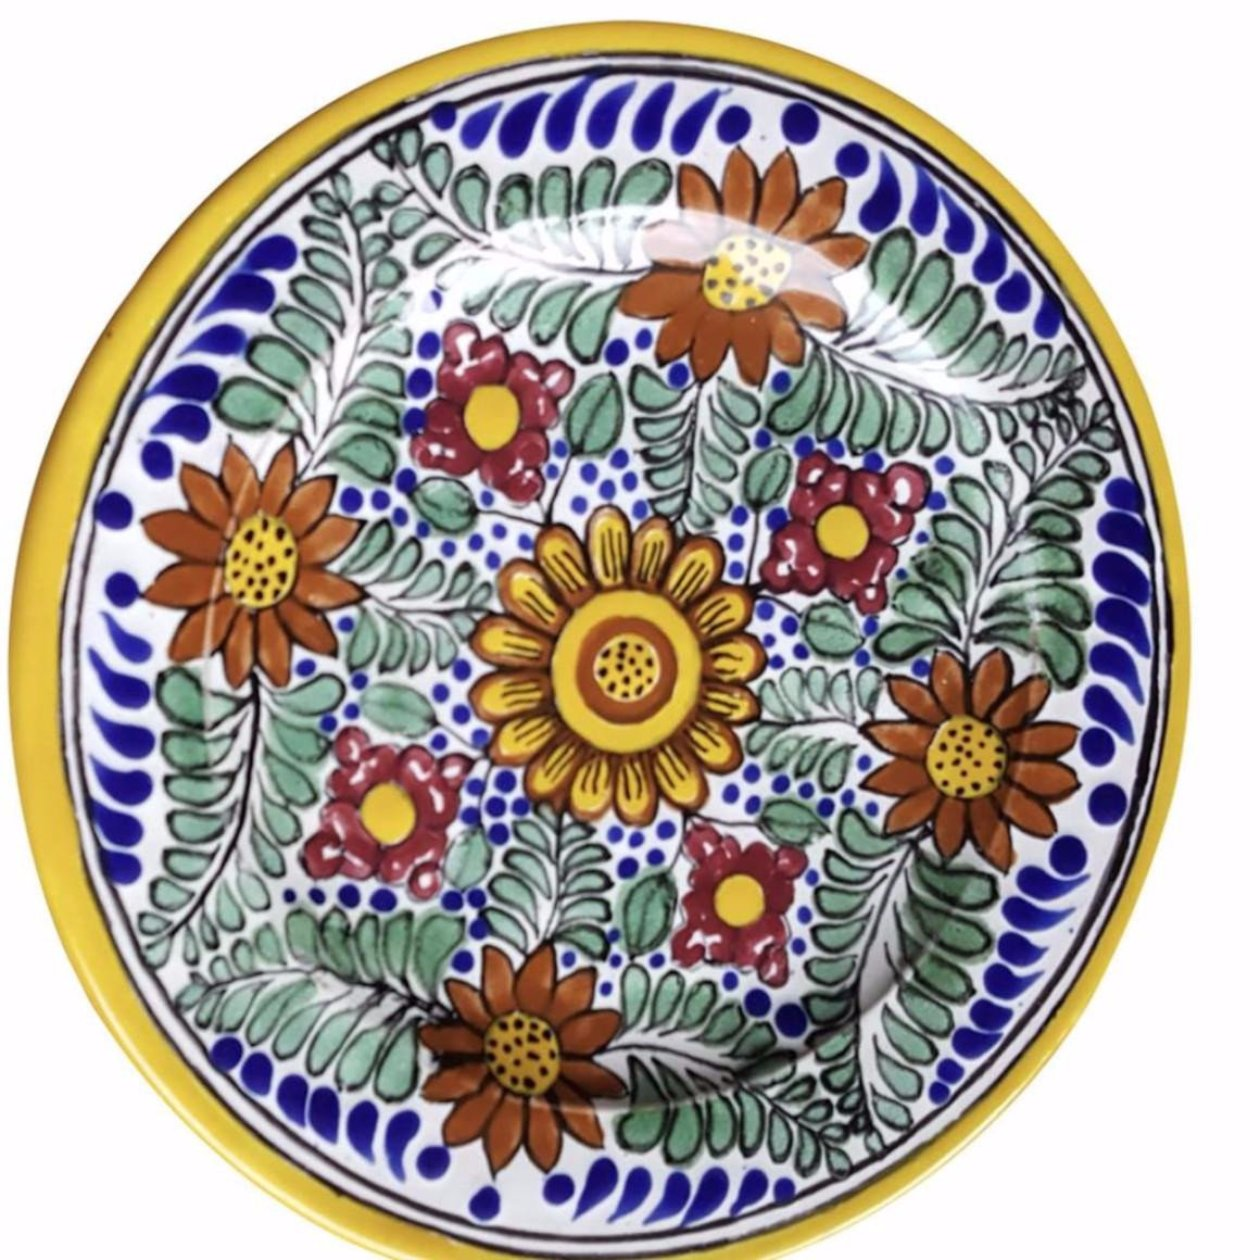 ... Rustica Gift Amapola Collection Mexican Talavera Pottery Dinner plate evocative of Italian Pottery ...  sc 1 st  Rustica Gift u0026 Talavera Pottery & Amapola Mexican Talavera Pottery Dinner Plate | Rustica Gift